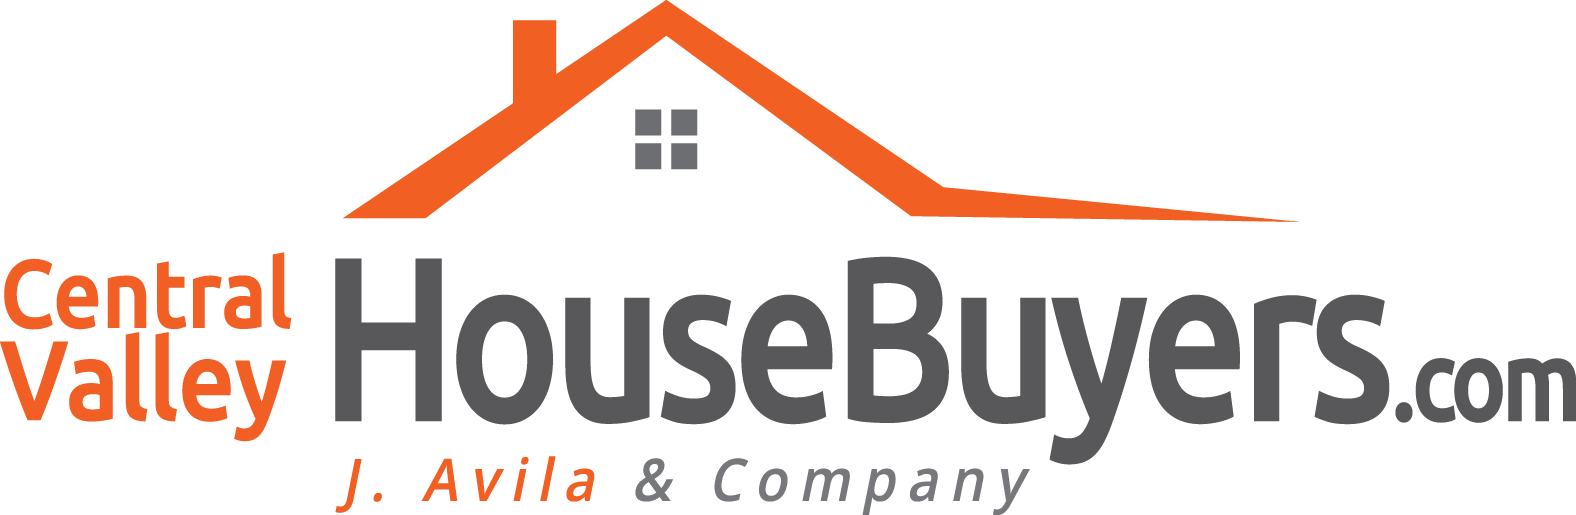 CentralValleyHouseBuyers.com logo